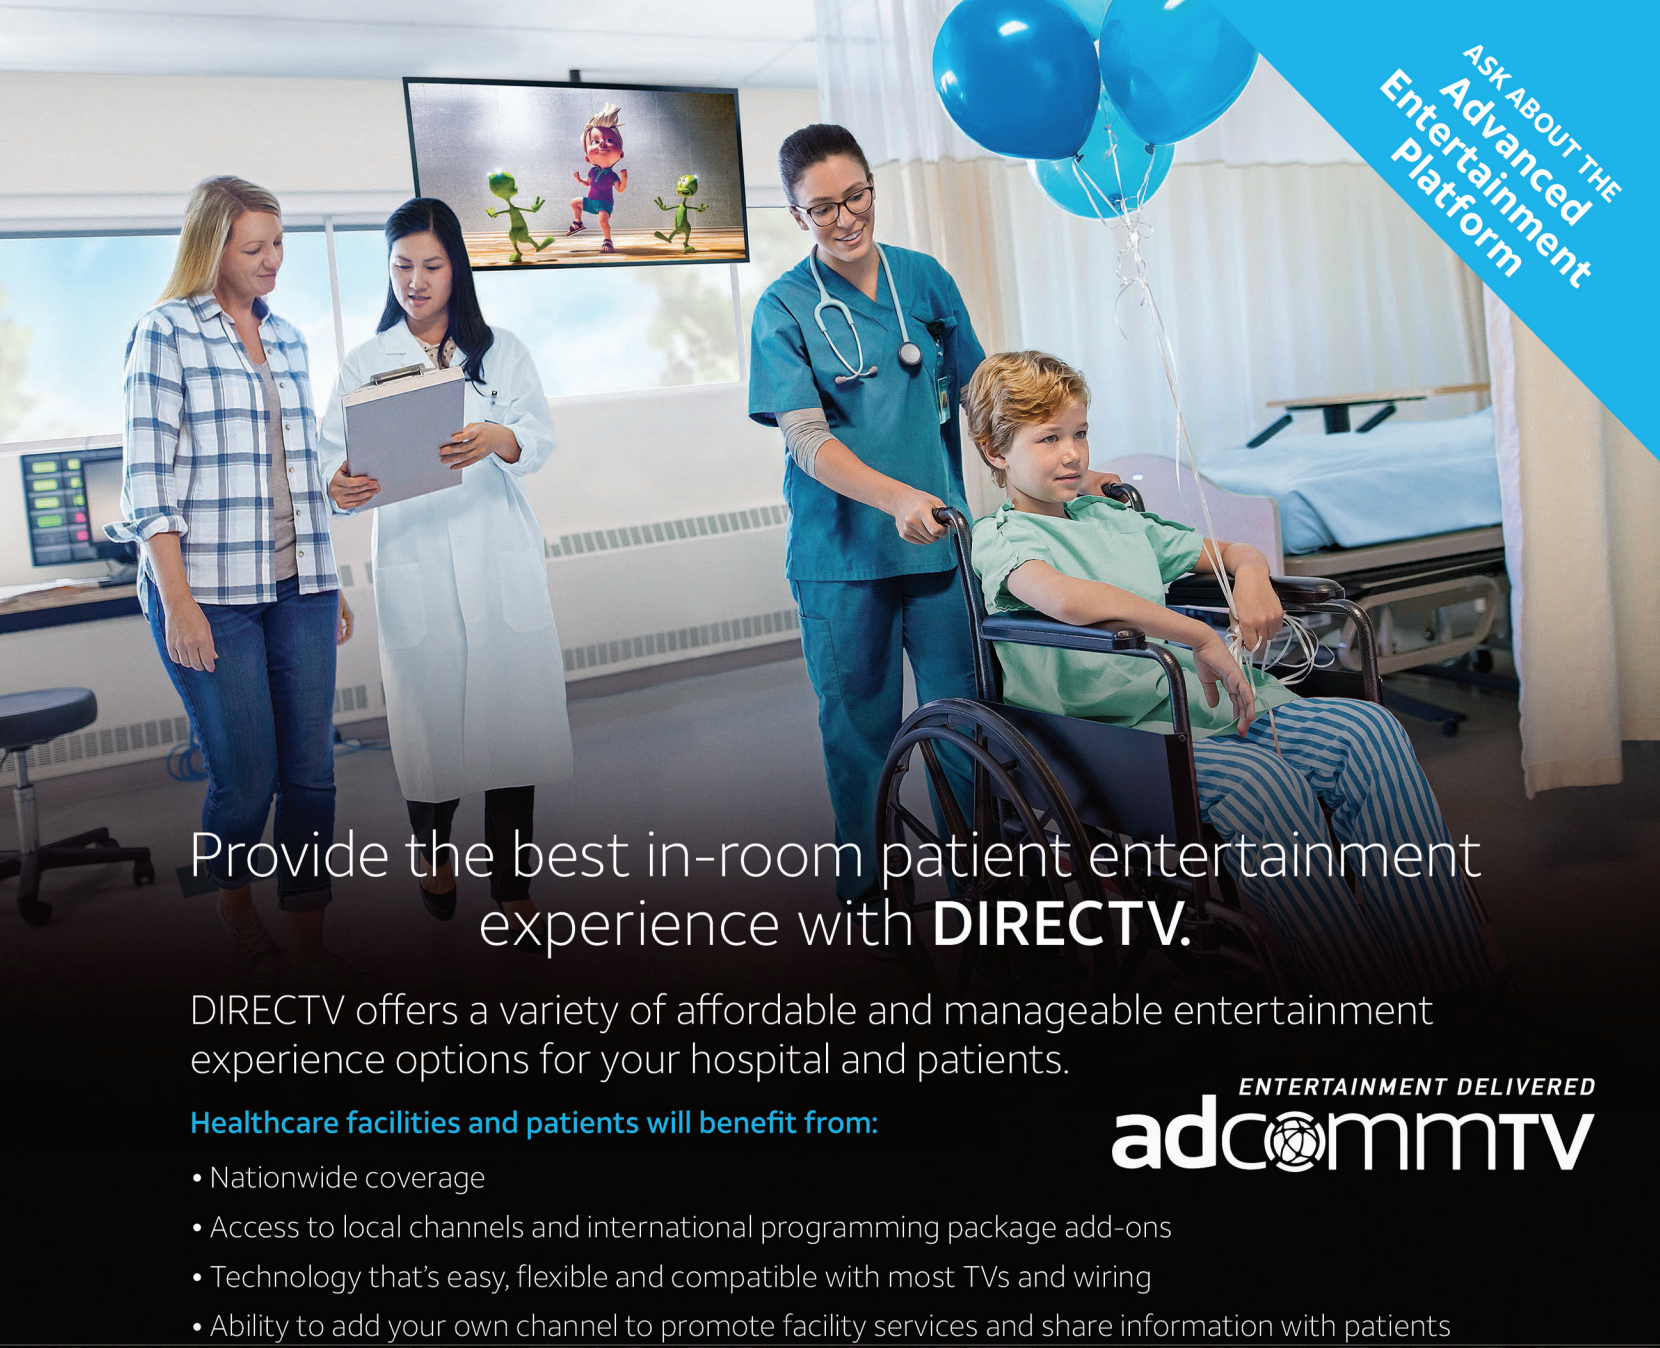 Provide the Best In-Room Patient Entertainment Experience with DIRECTV